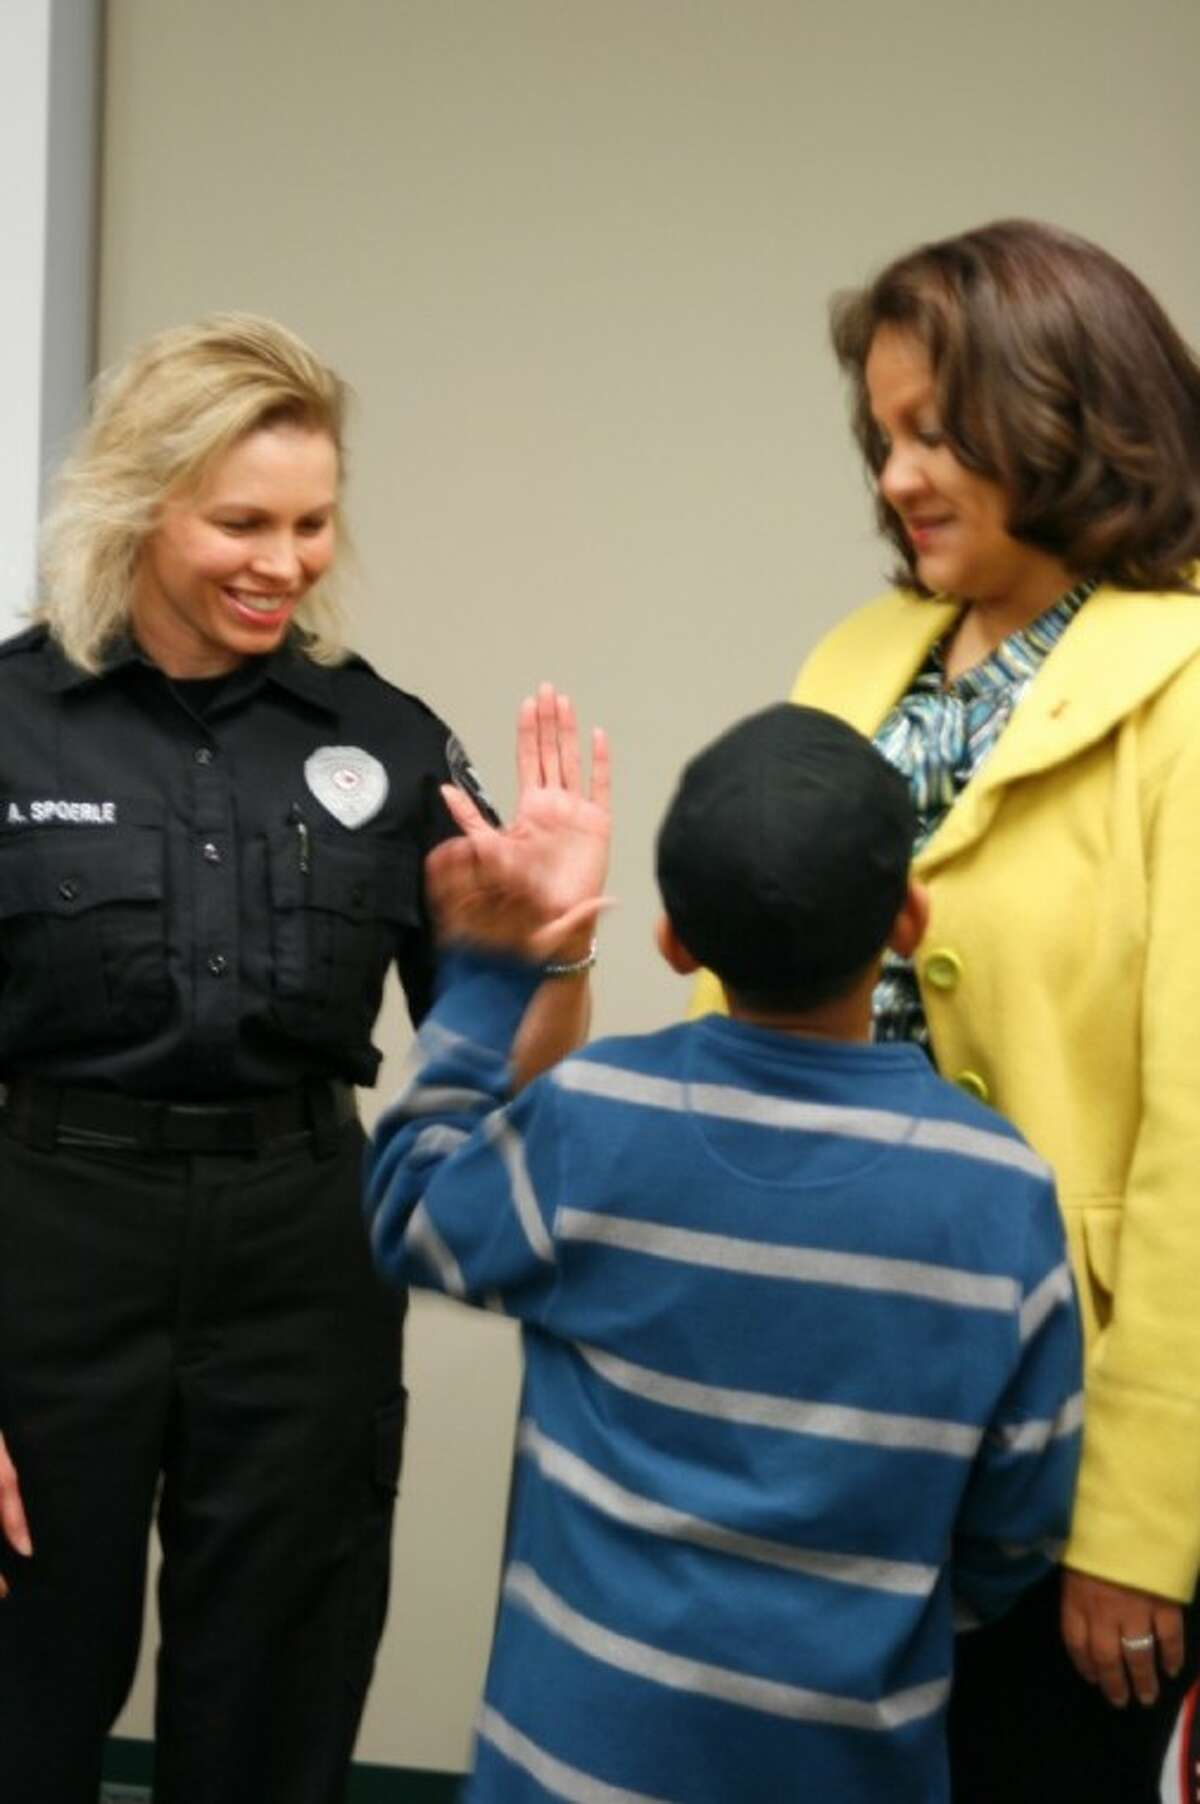 ESD 1 paramedic Amy Spoerle gives Treyvion Fontenot a high five during the reuniting ceremony Dec. 29. Fontenot called 911 after his mother had a heart attack about two weeks ago.